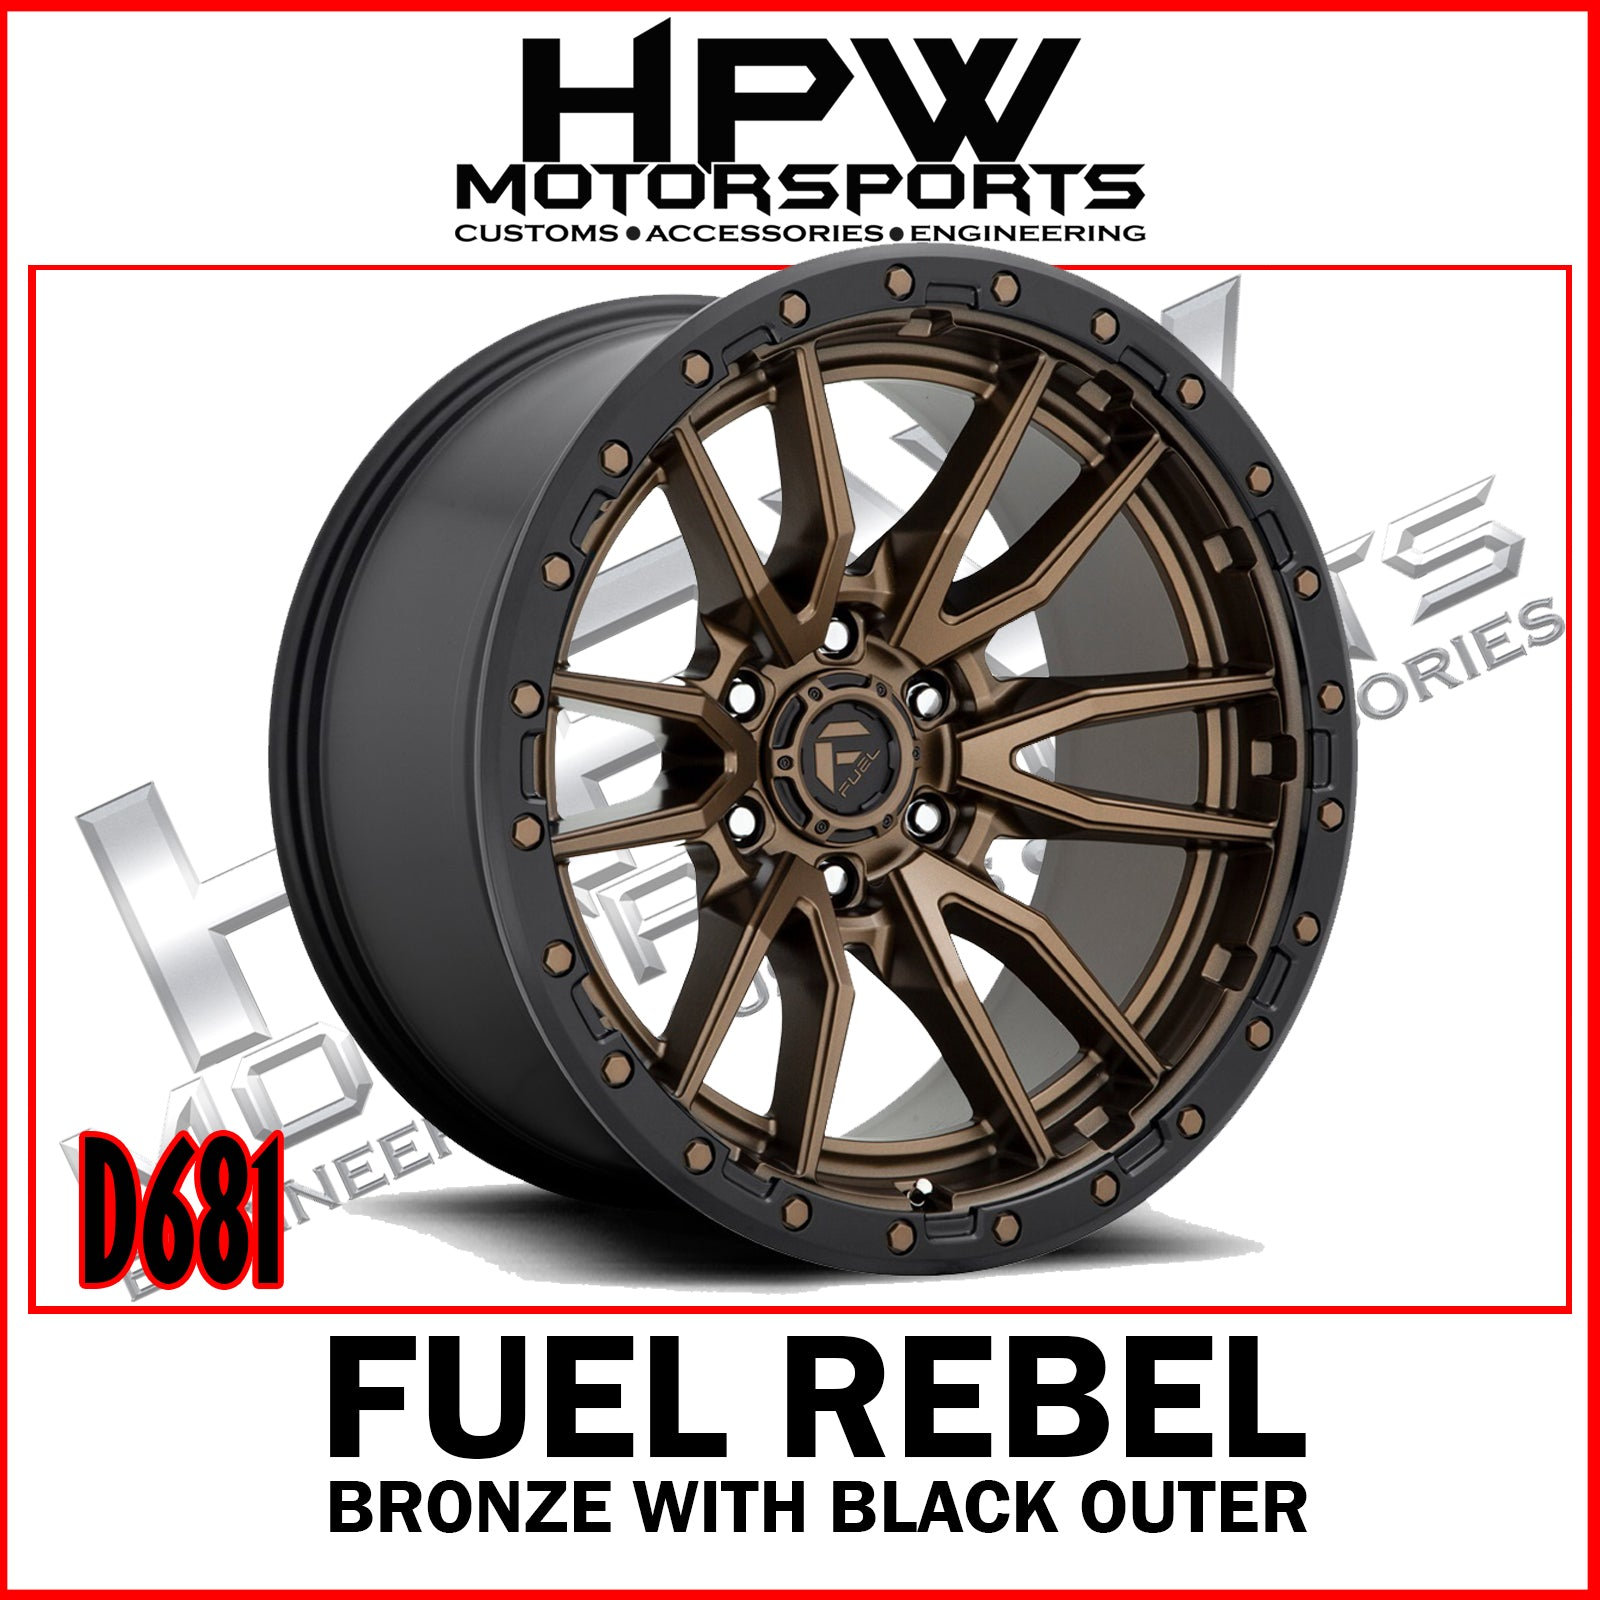 D681 REBEL - BRONZE WITH BLACK OUTER - Set of 4